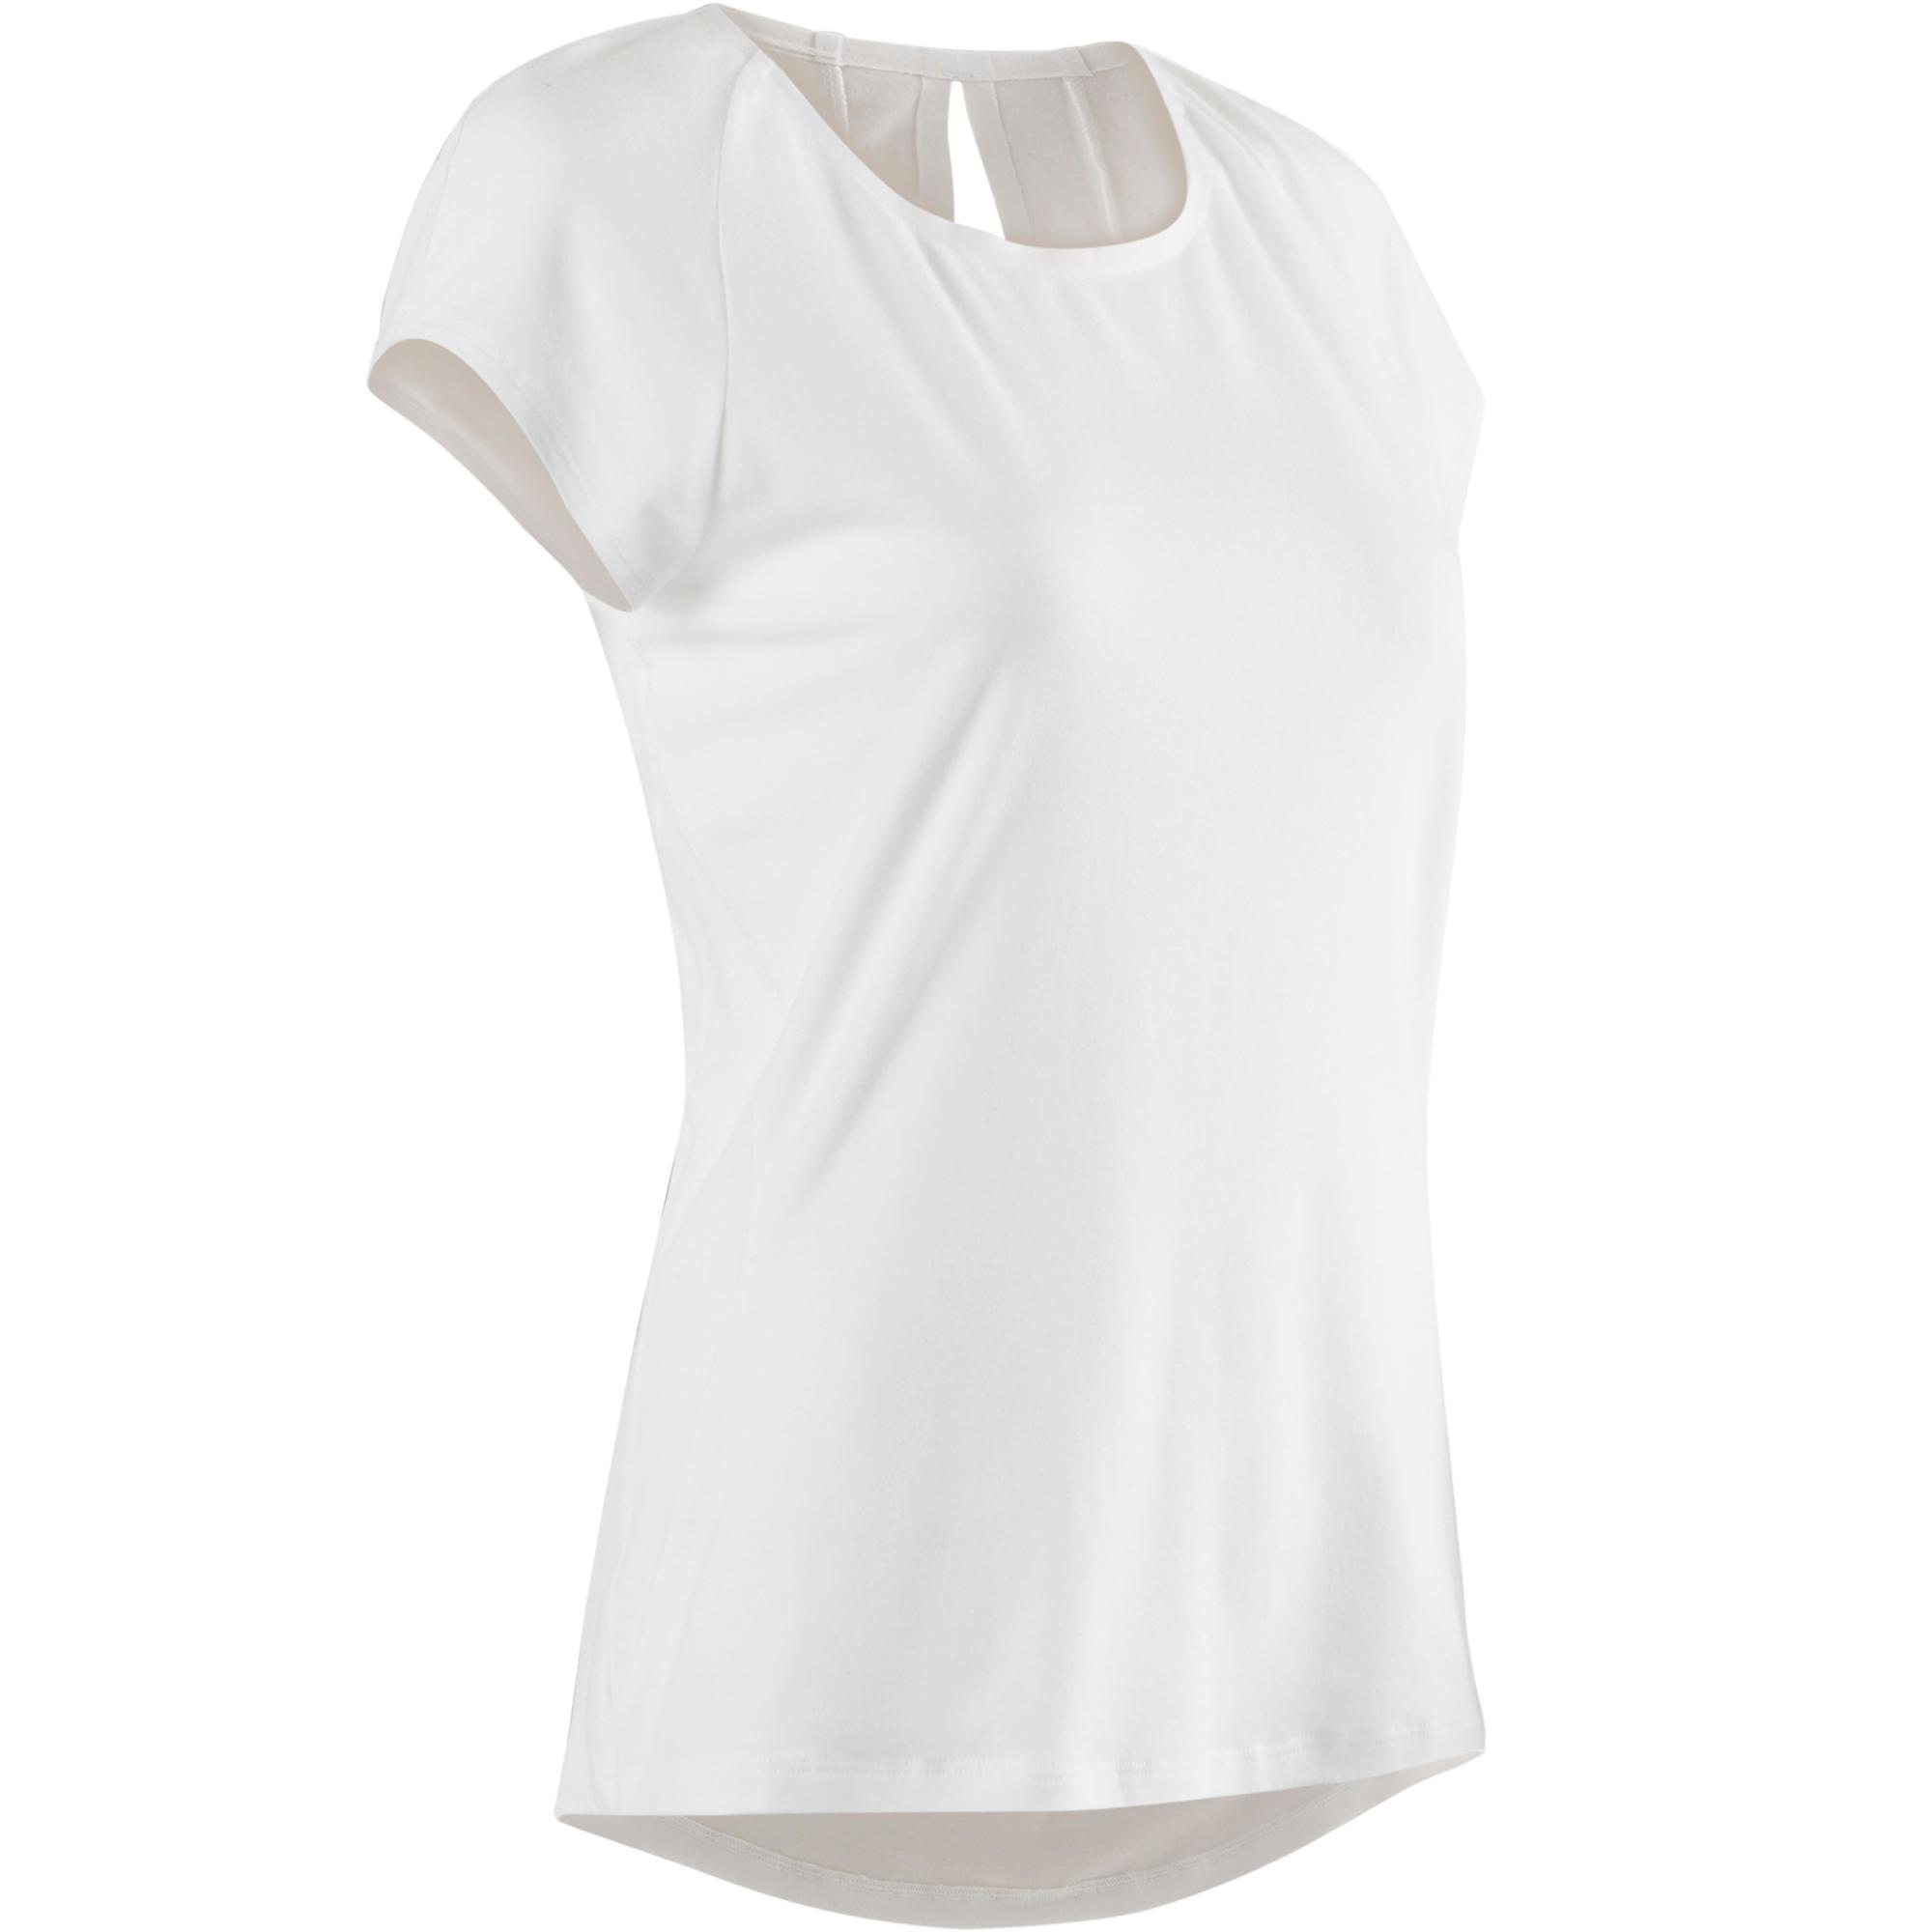 Domyos T-shirt 520 pilates en lichte gym dames wit